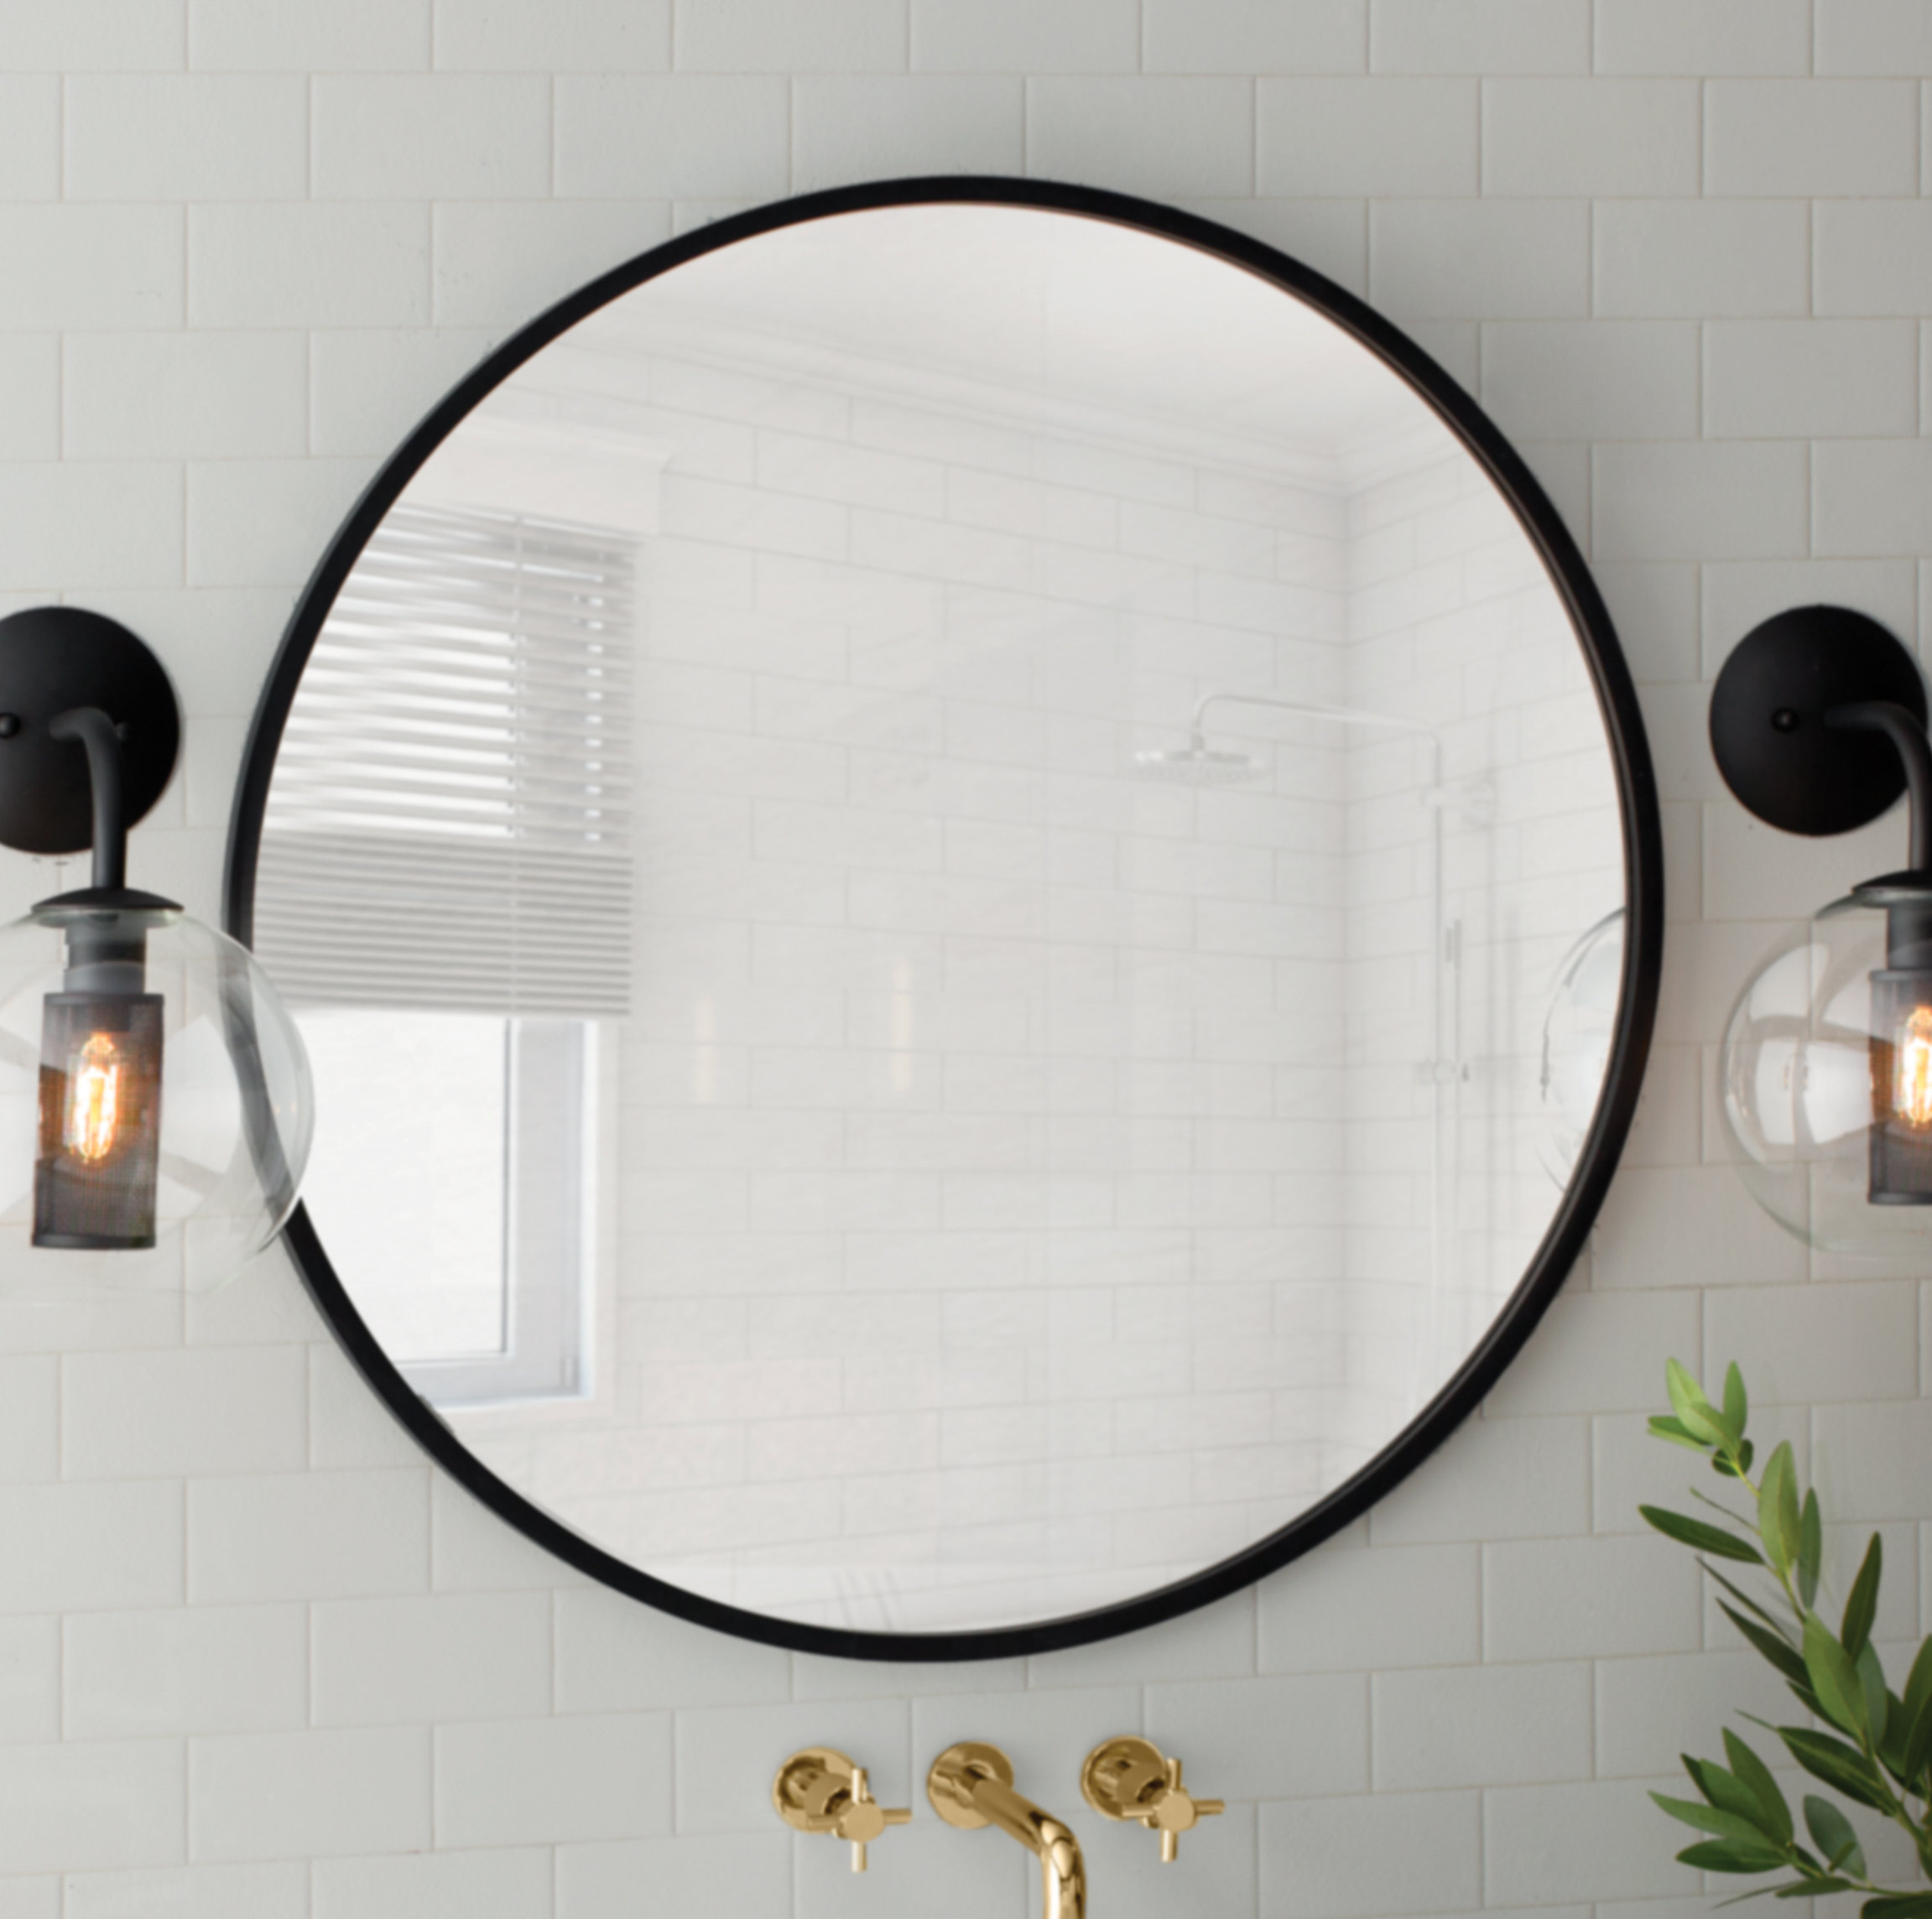 Hub Modern And Contemporary Accent Mirror In Needville Modern & Contemporary Accent Mirrors (View 7 of 30)